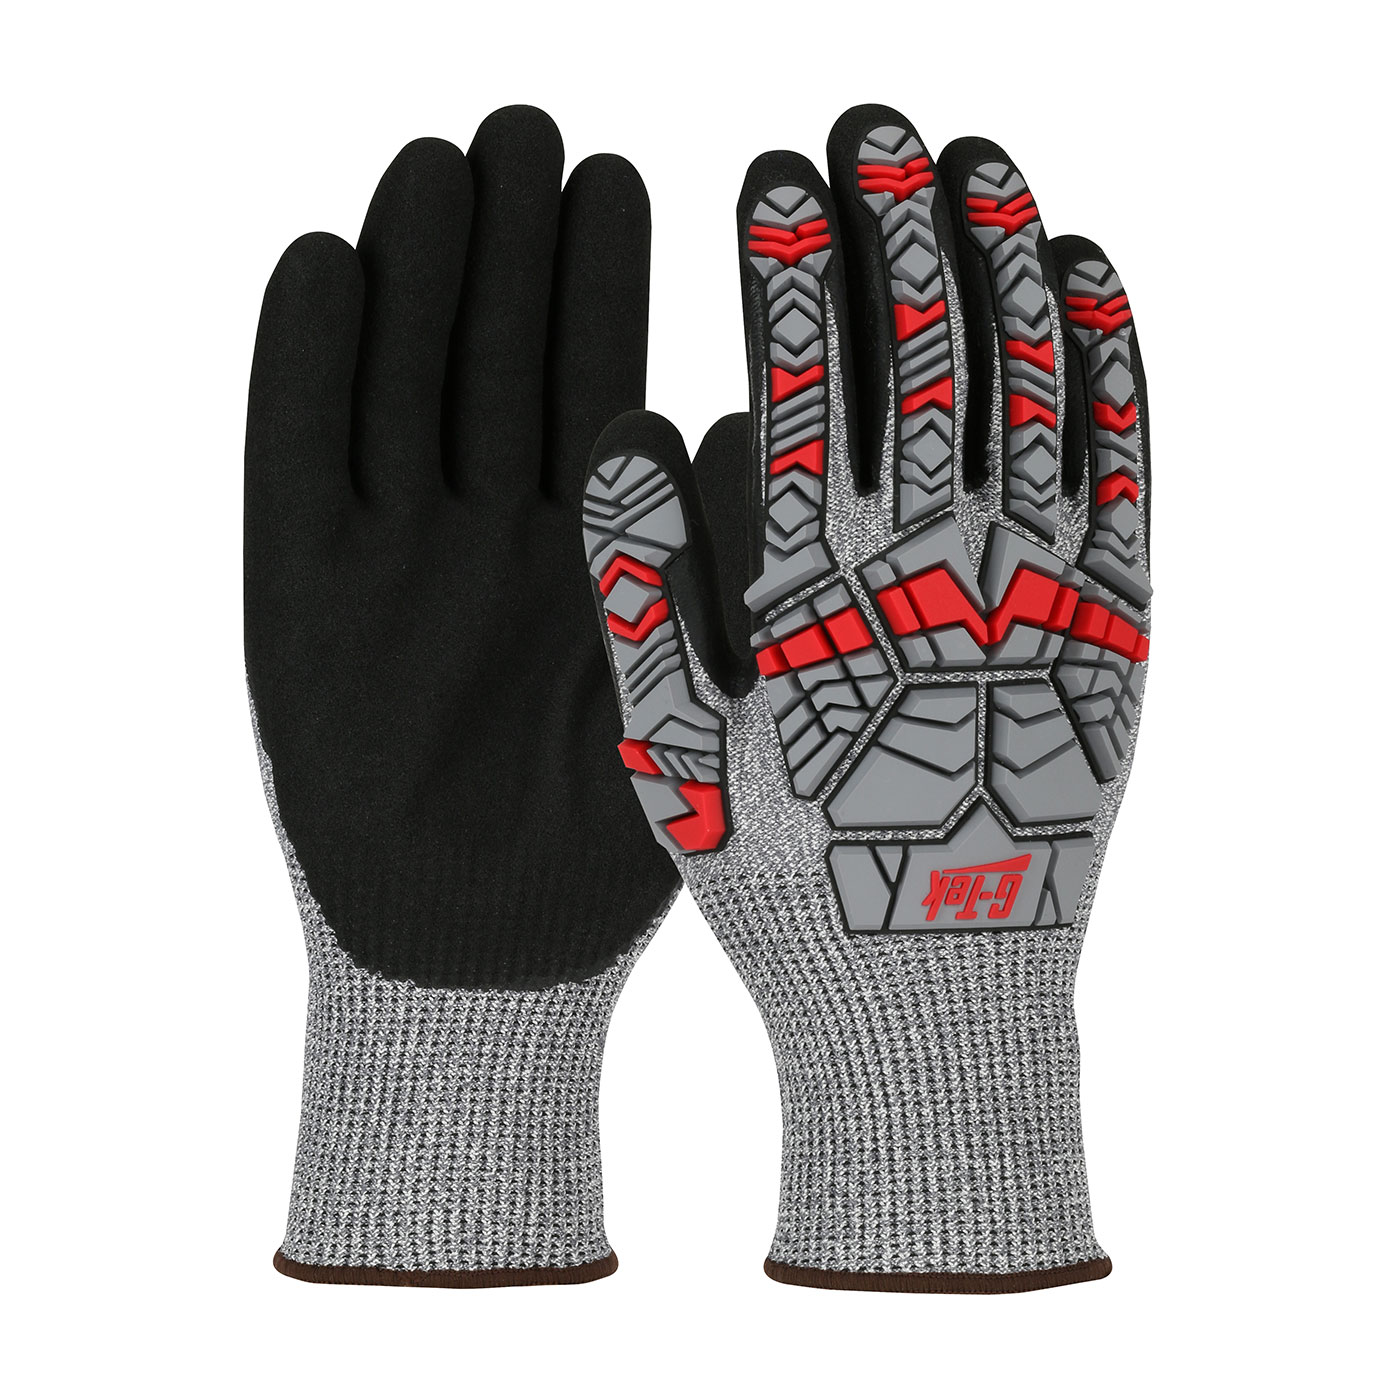 16-MPH430 PIP® G-Tek® Seamless Knit PolyKor® Blended Glove with Impact Protection and Double-Dipped Nitrile Coated MicroSurface Grip on Palm & Fingers